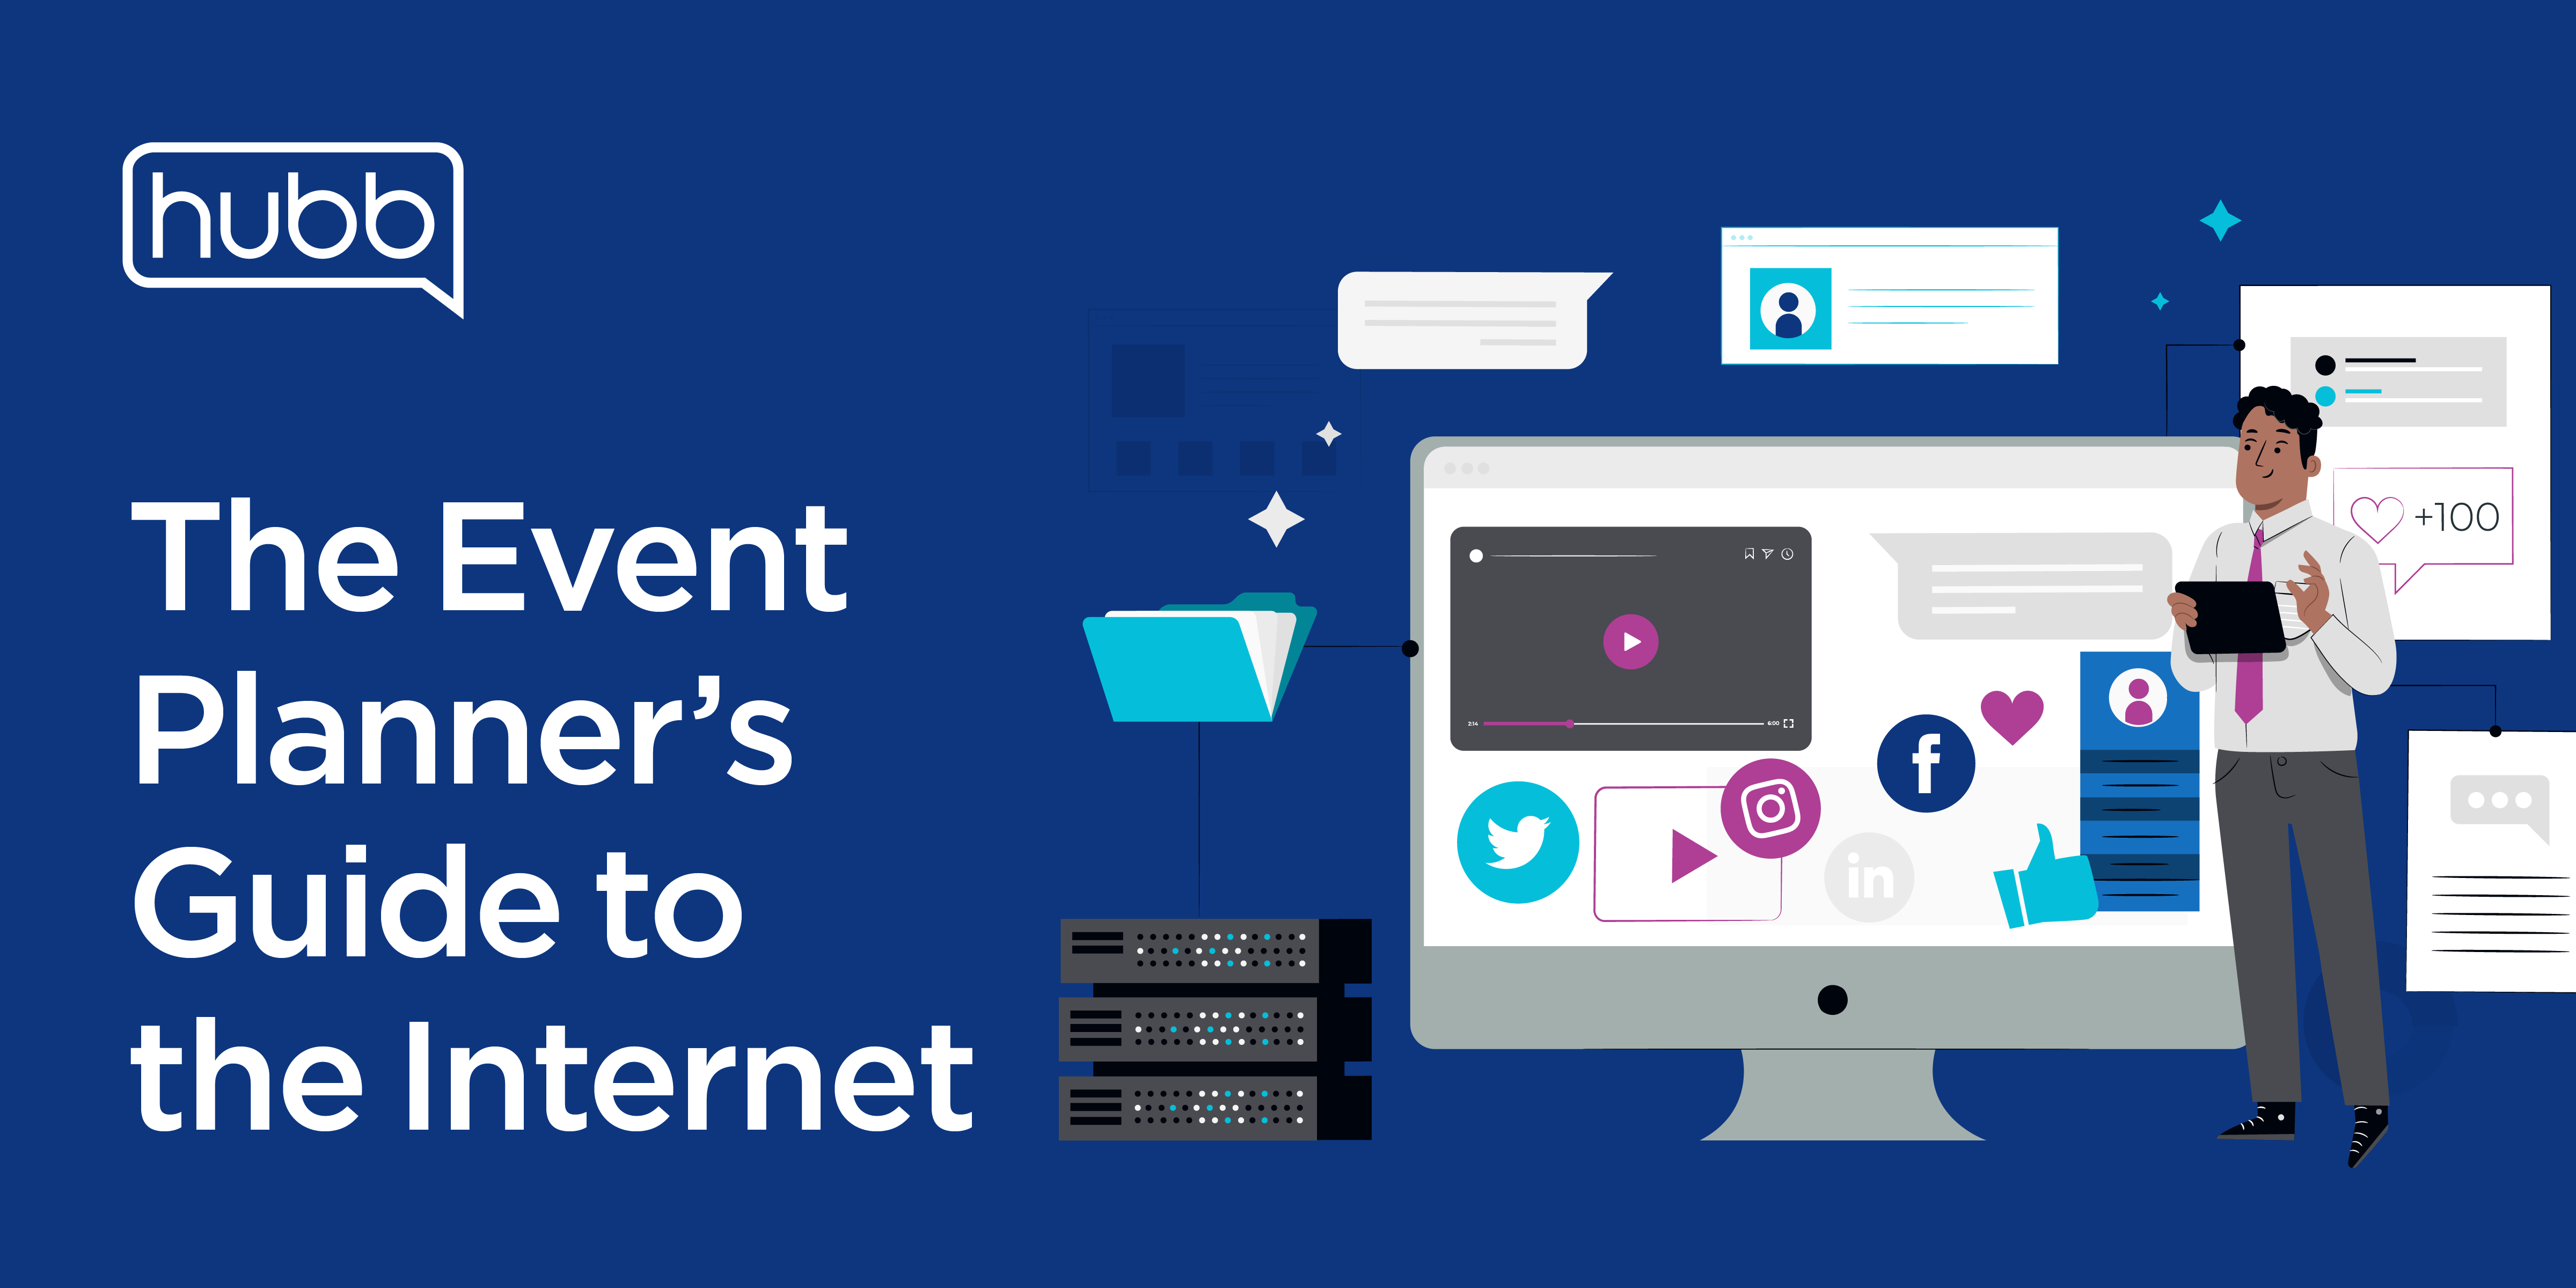 The Event Planner's Guide to the Internet